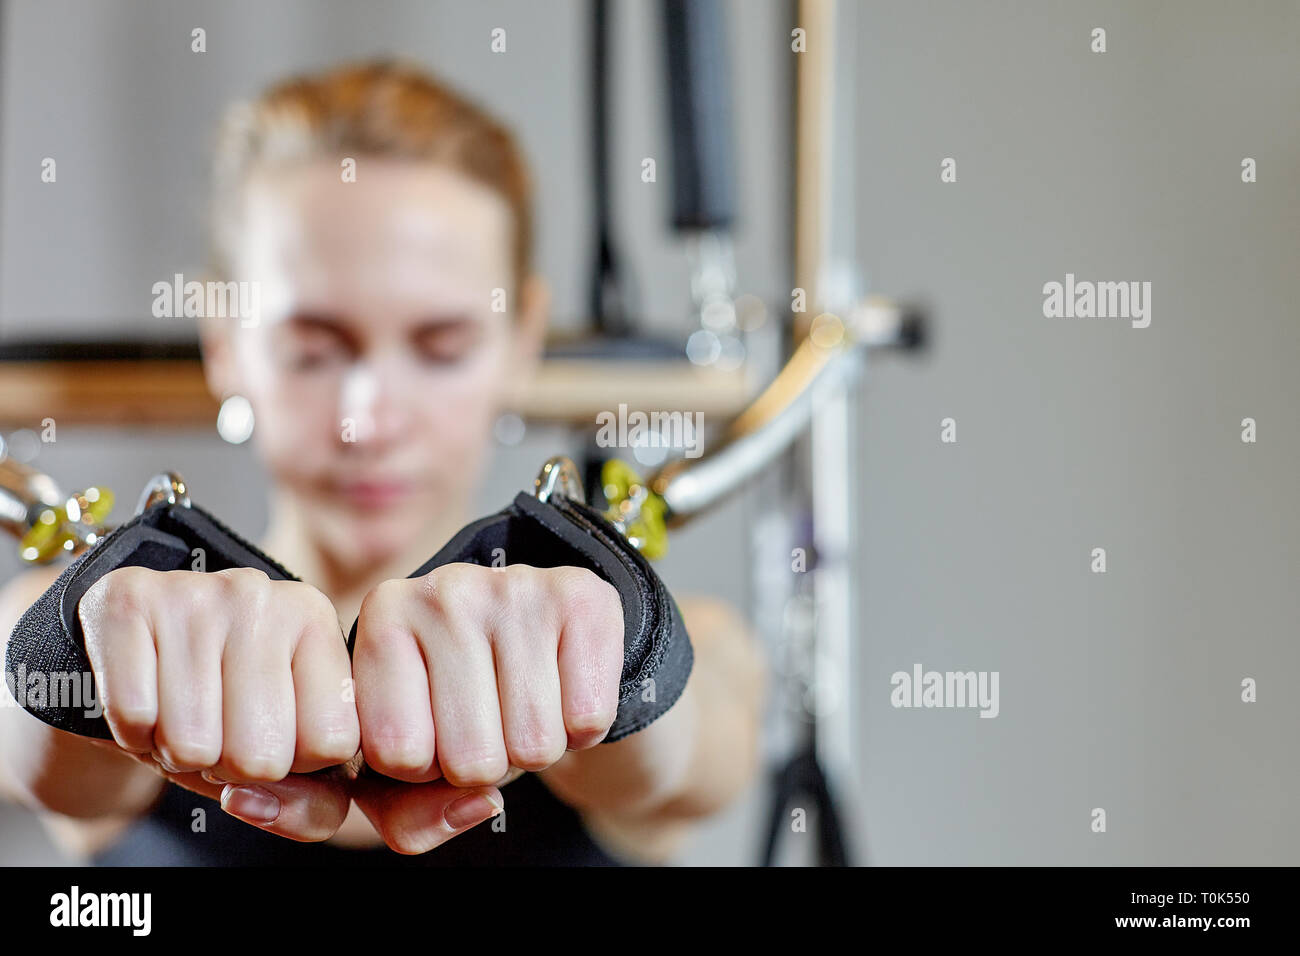 gym woman pilates stretching sport in reformer bed instructor girl. Selective focus on hands - Stock Image